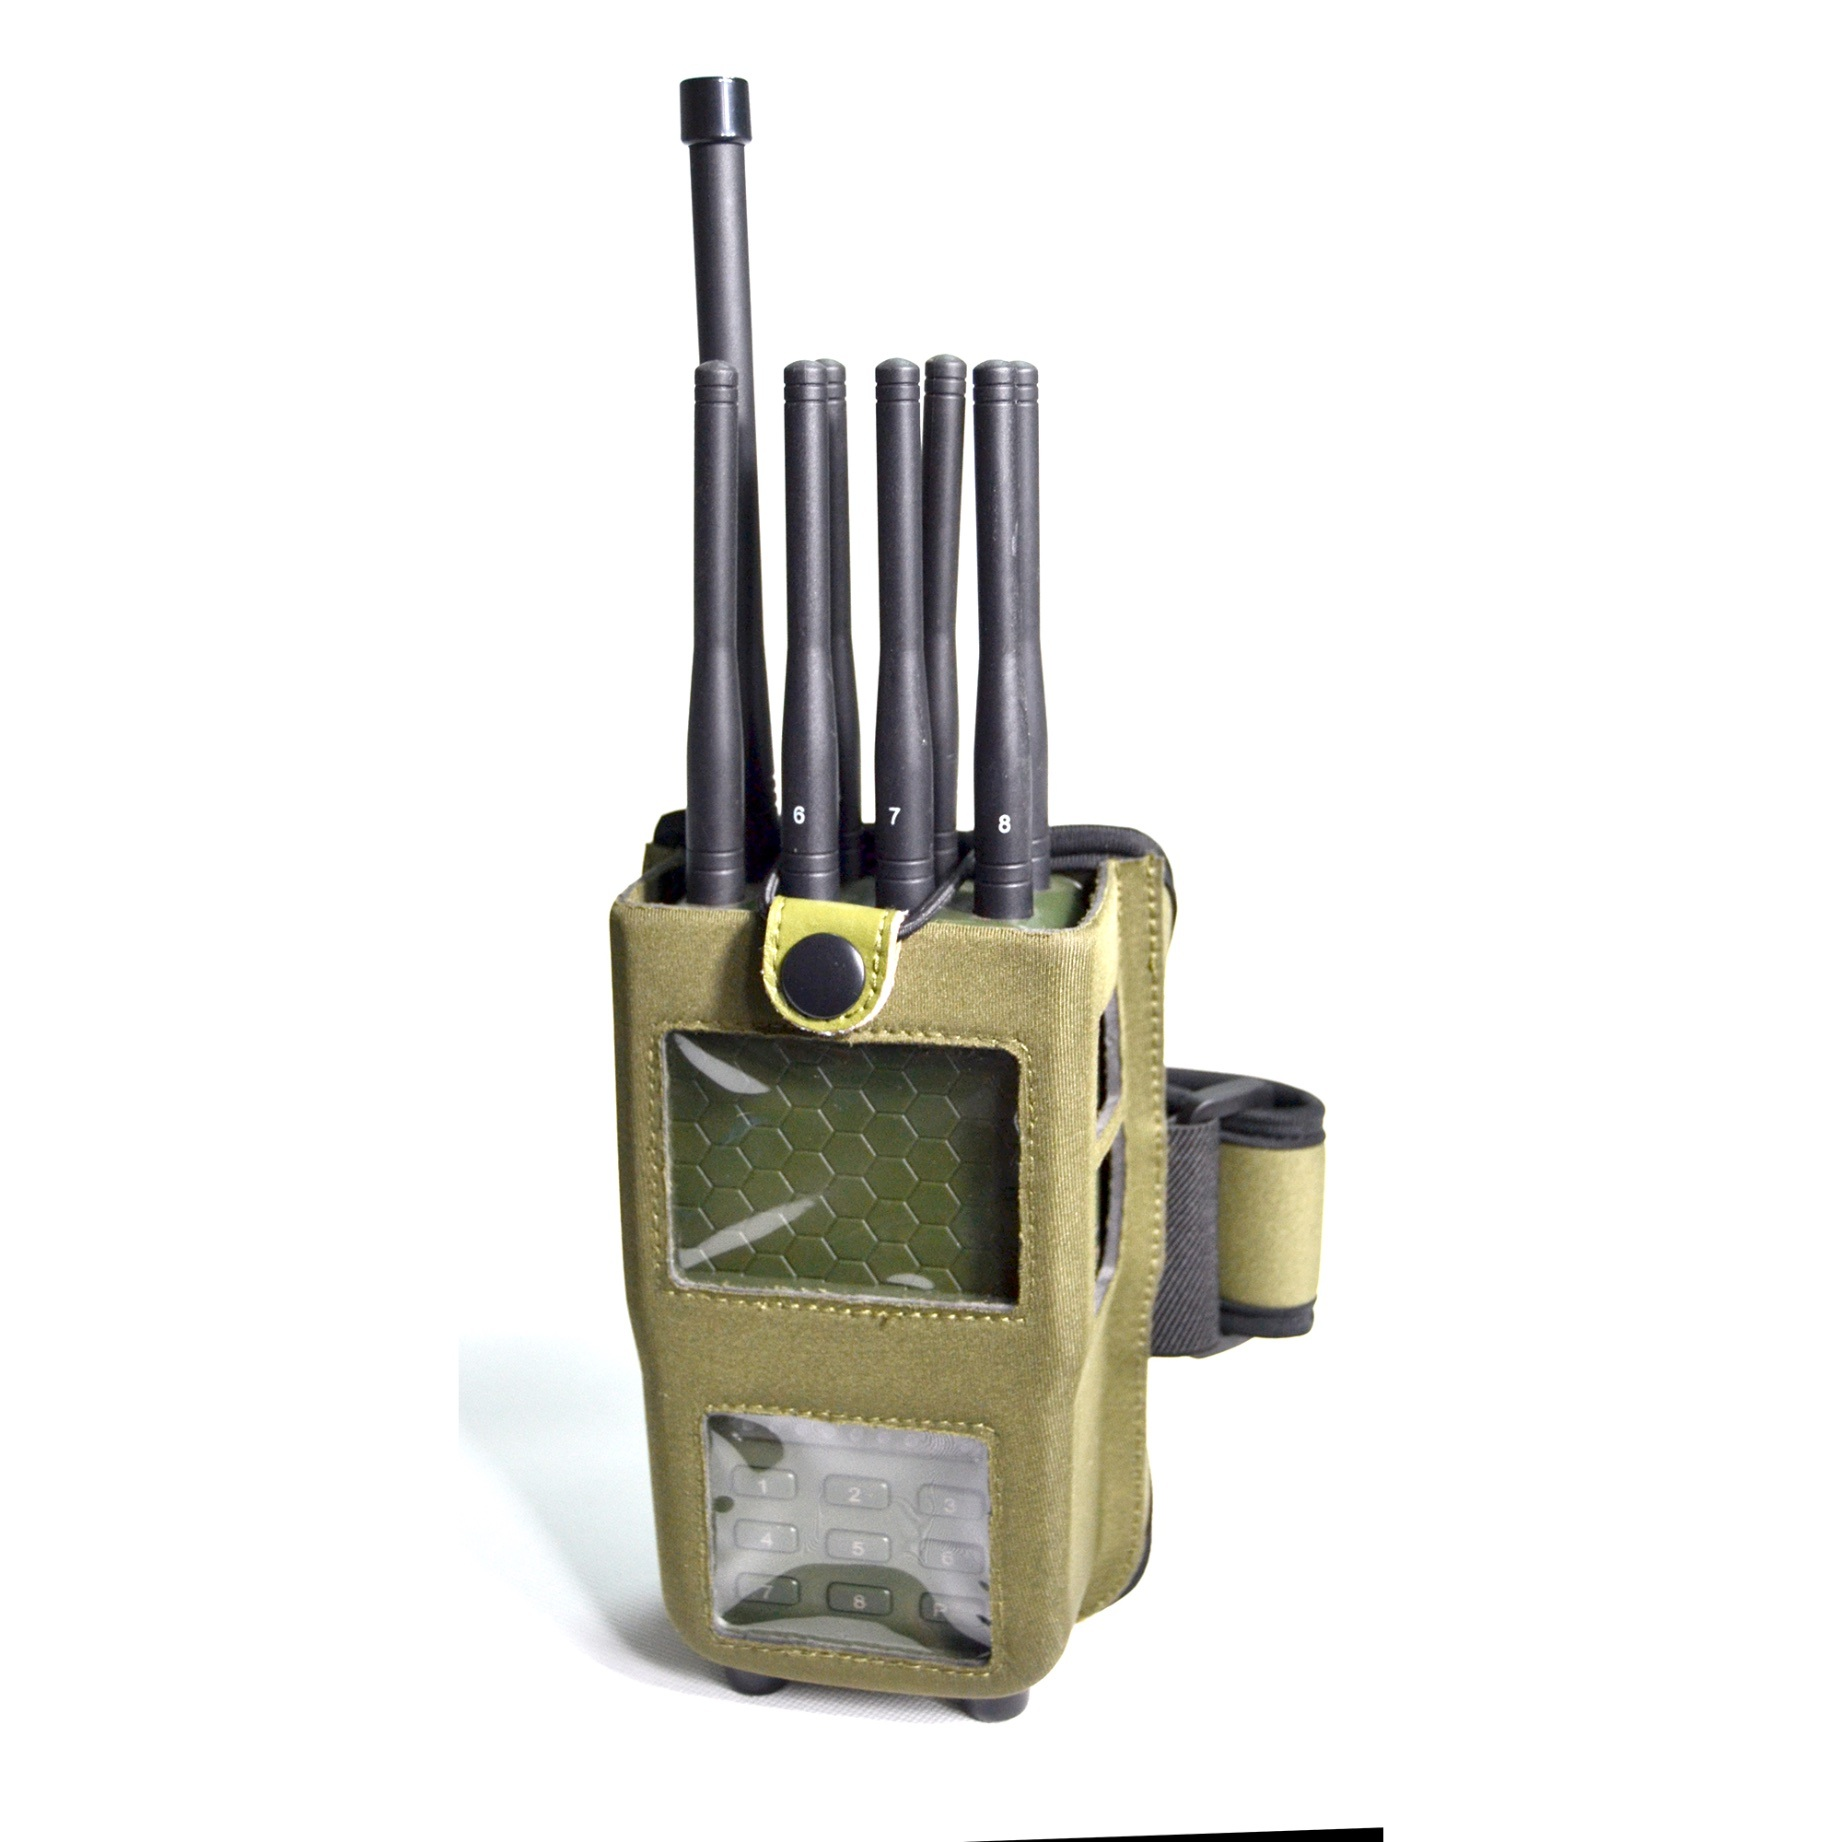 25 watt jammer , China Newest Portable Hanheld High Power 8-Channel Cellphone 2g 3G 4G GSM CDMA Signal WiFi Radio Lojack Jammer,3G 4G Cell Phone, Lojack 173MHz,RC433/315MHz GPS Jammer - China Portable Eight Antenna for All Cellular GPS Loj, Lojack/WiFi/4G/GPS/VHF/UHF Jammer